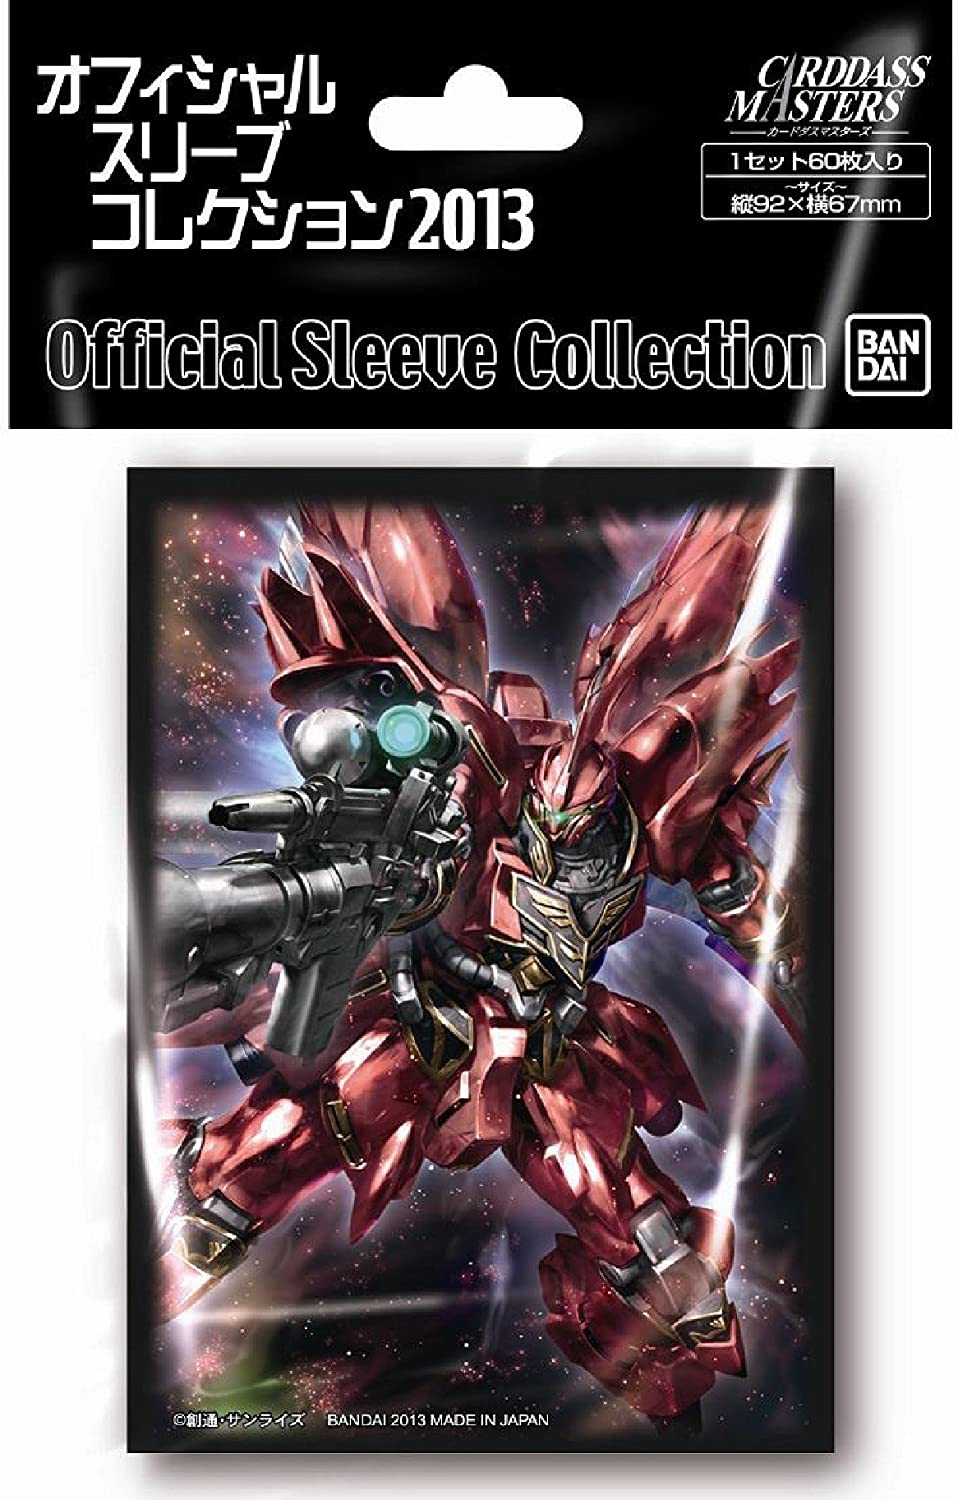 Carddass Masters Official Sleeve Collection 2013 Vol.2 [Gundam  Sinanju with Bazooka]